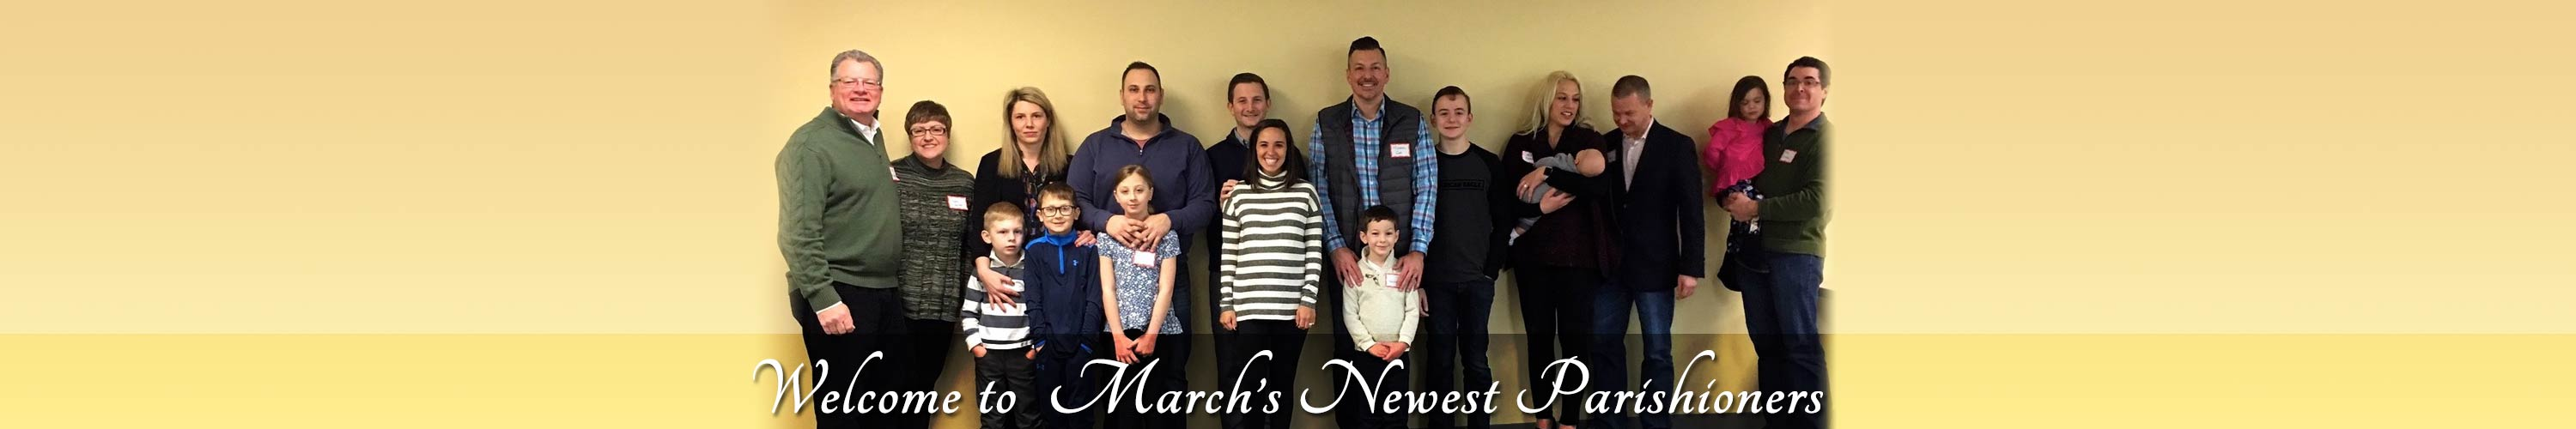 Welcome-New-Parishioners-march